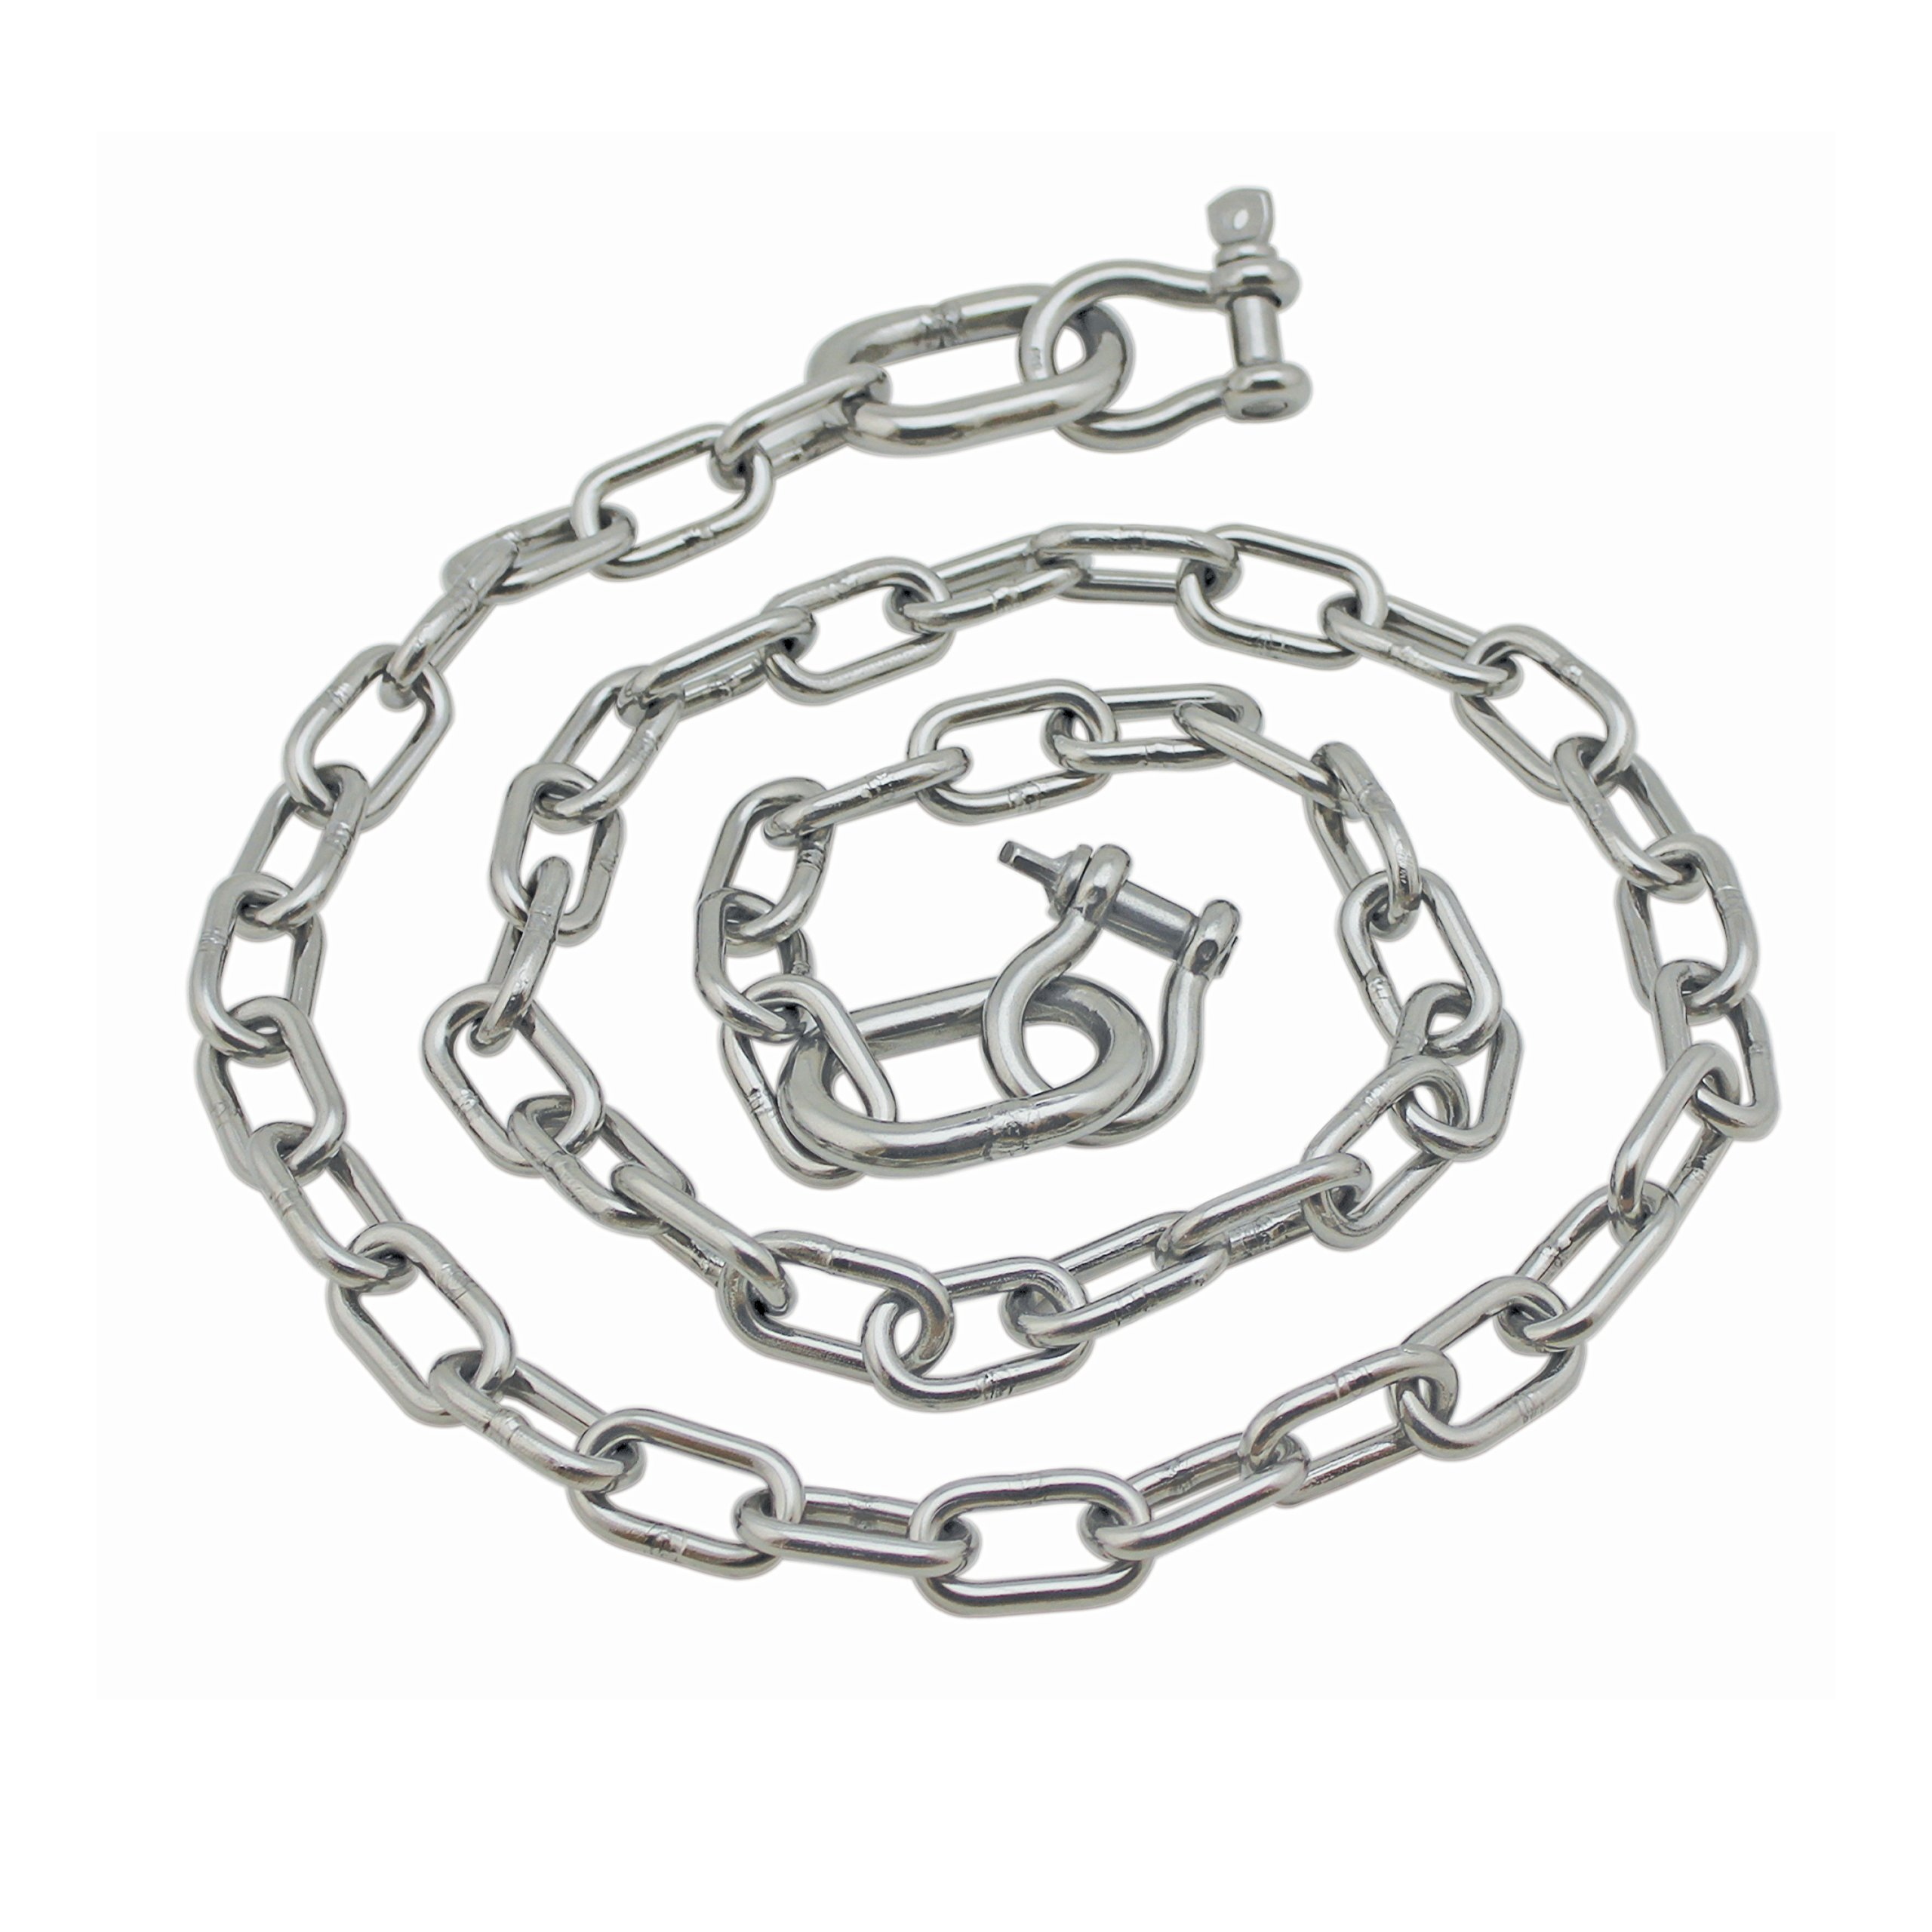 Extreme Max 3006.6578 BoatTector Anchor Chain - 1/4'' x 4' Stainless Steel with 5/16'' Shackles